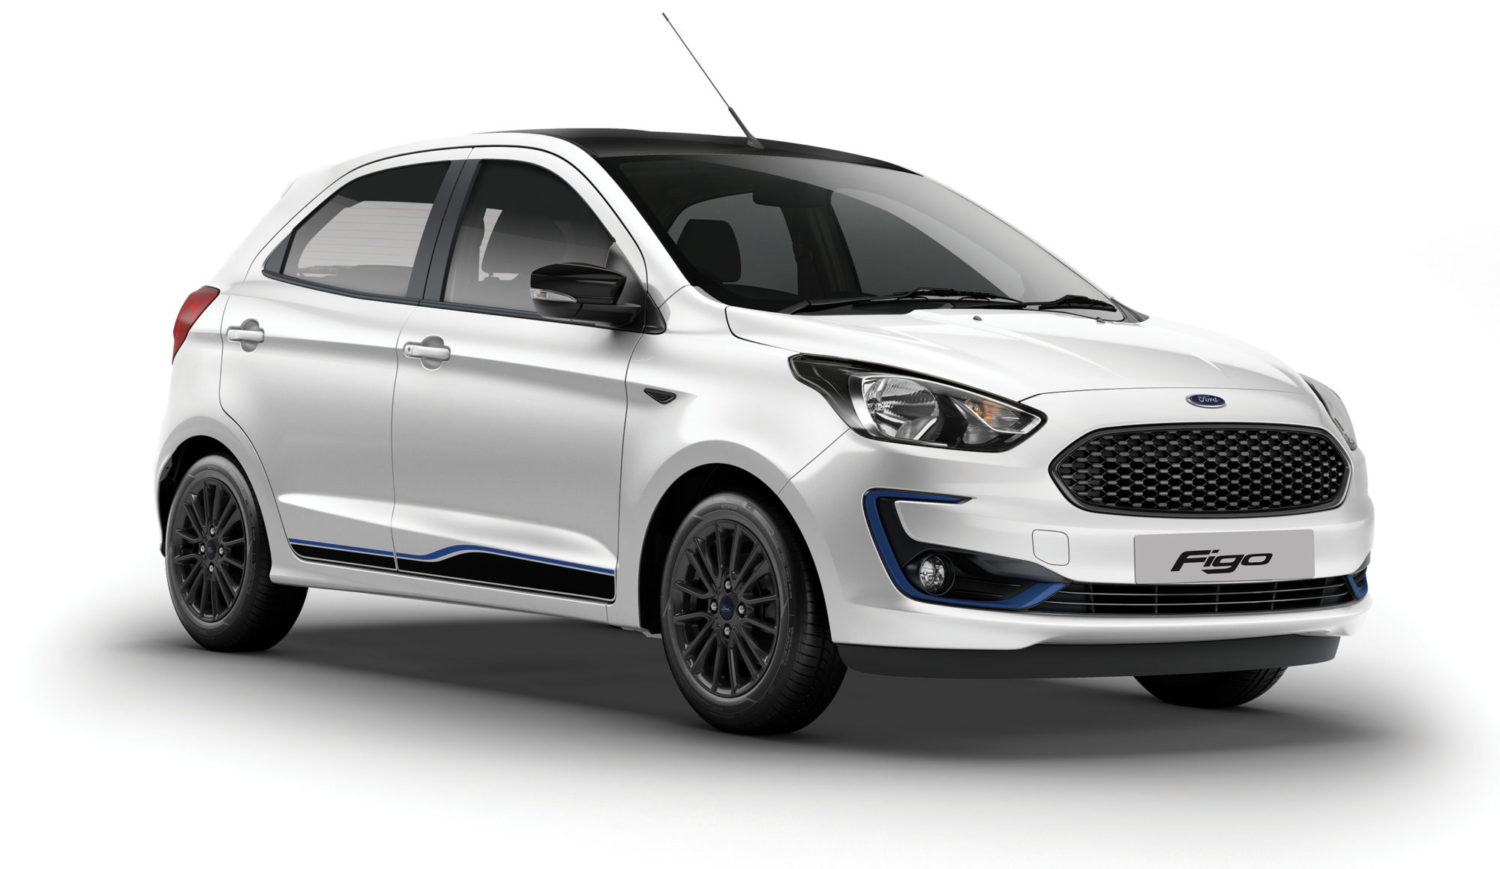 2019 Ford Figo Facelift Launched In India; Priced From Rs. 5.15 Lakh